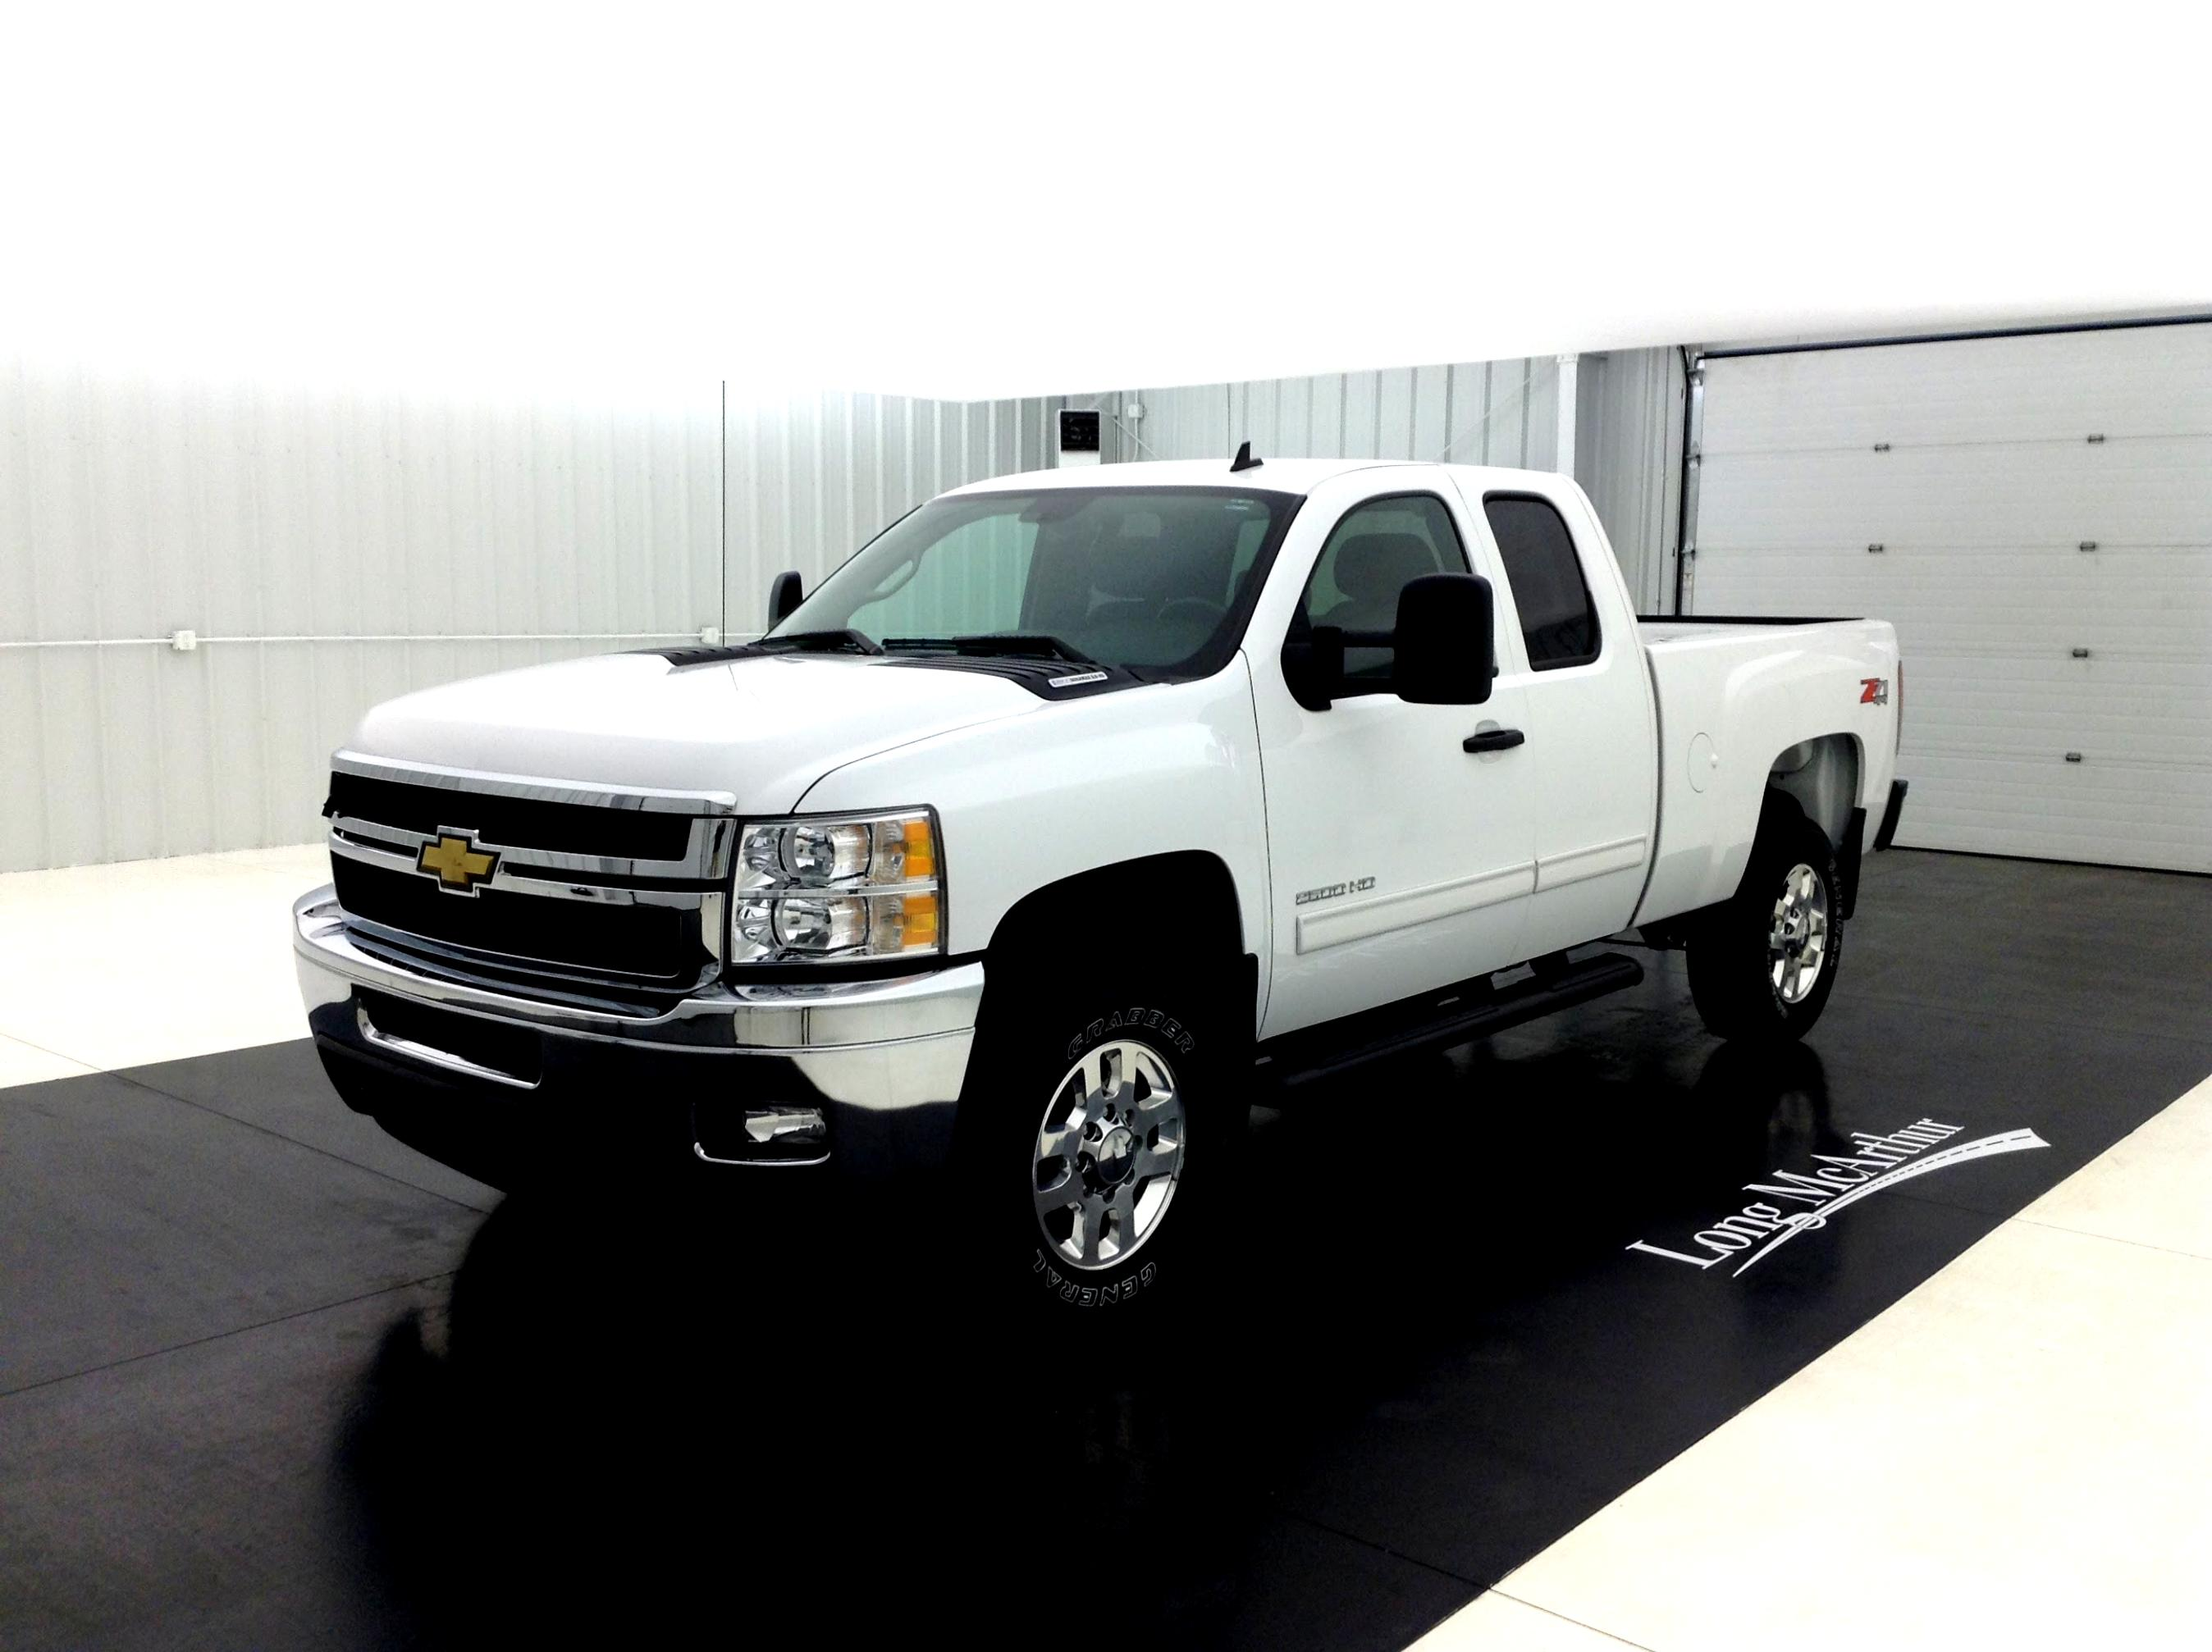 Chevrolet Silverado 2500HD Regular Cab 2008 #43